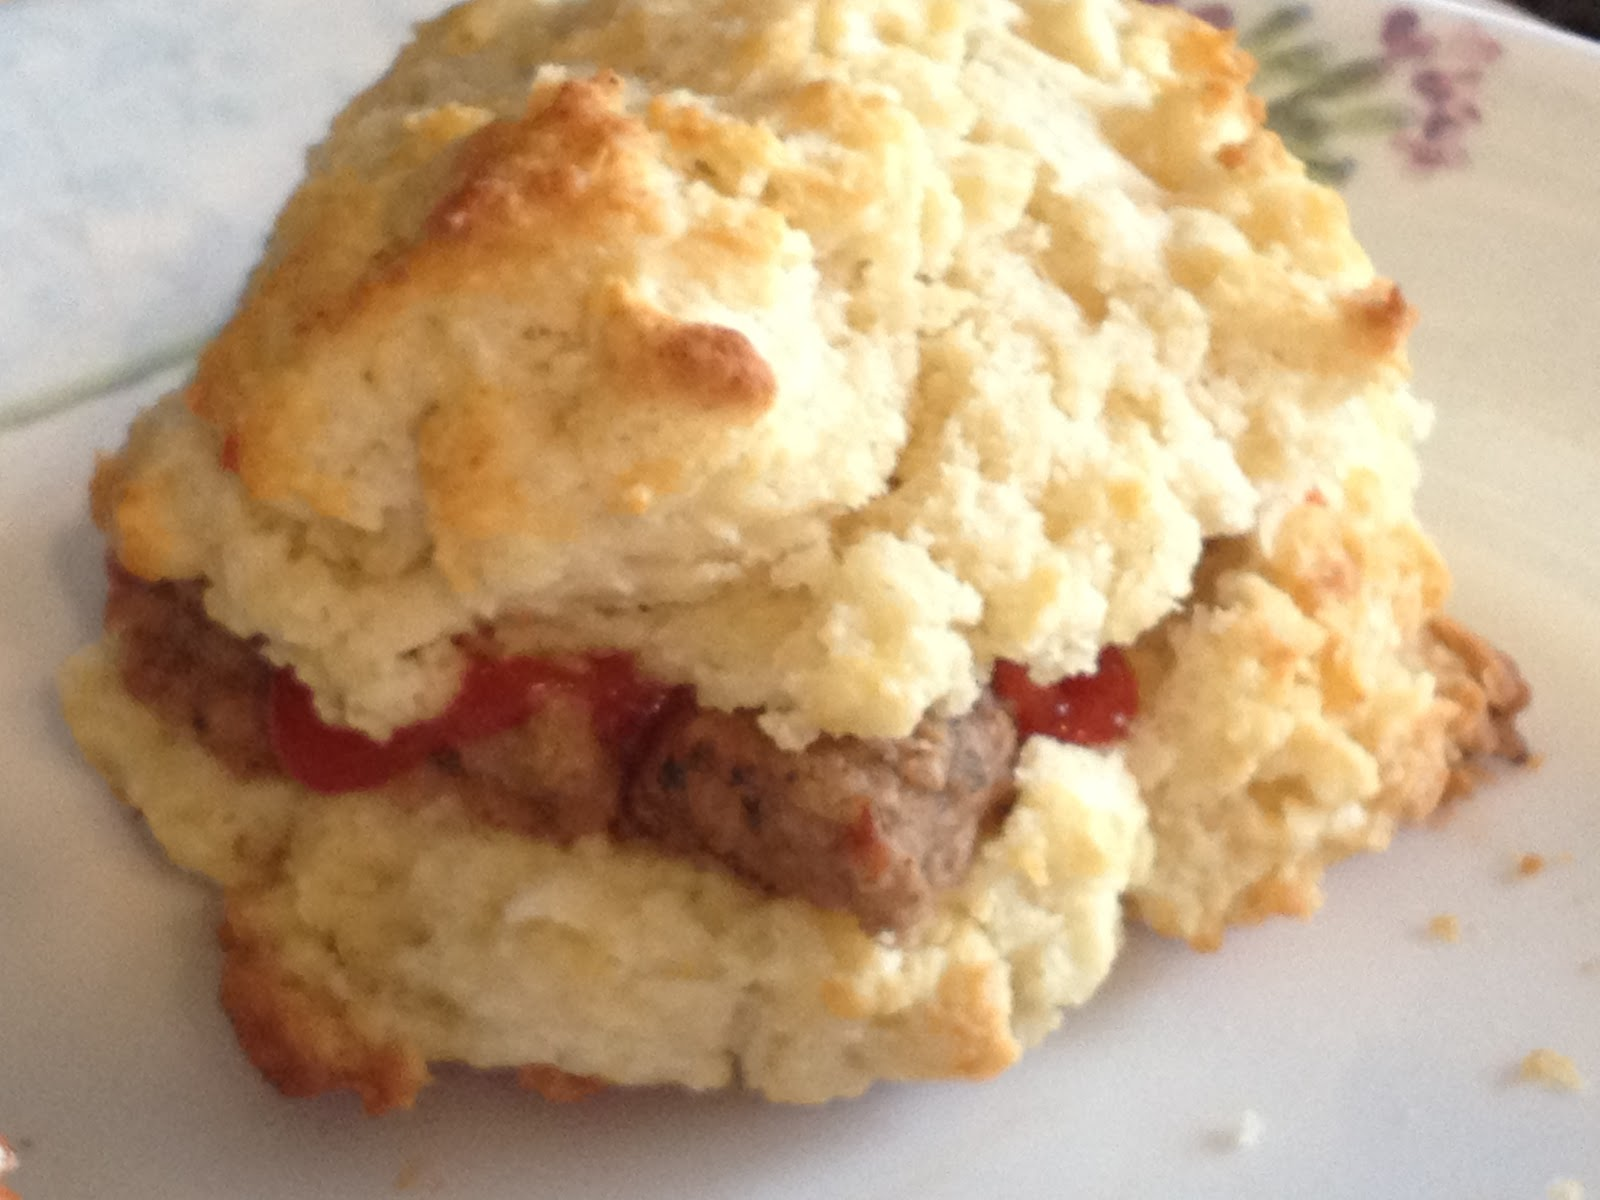 At the Pink of Perfection: Recipe: Sausage Biscuits